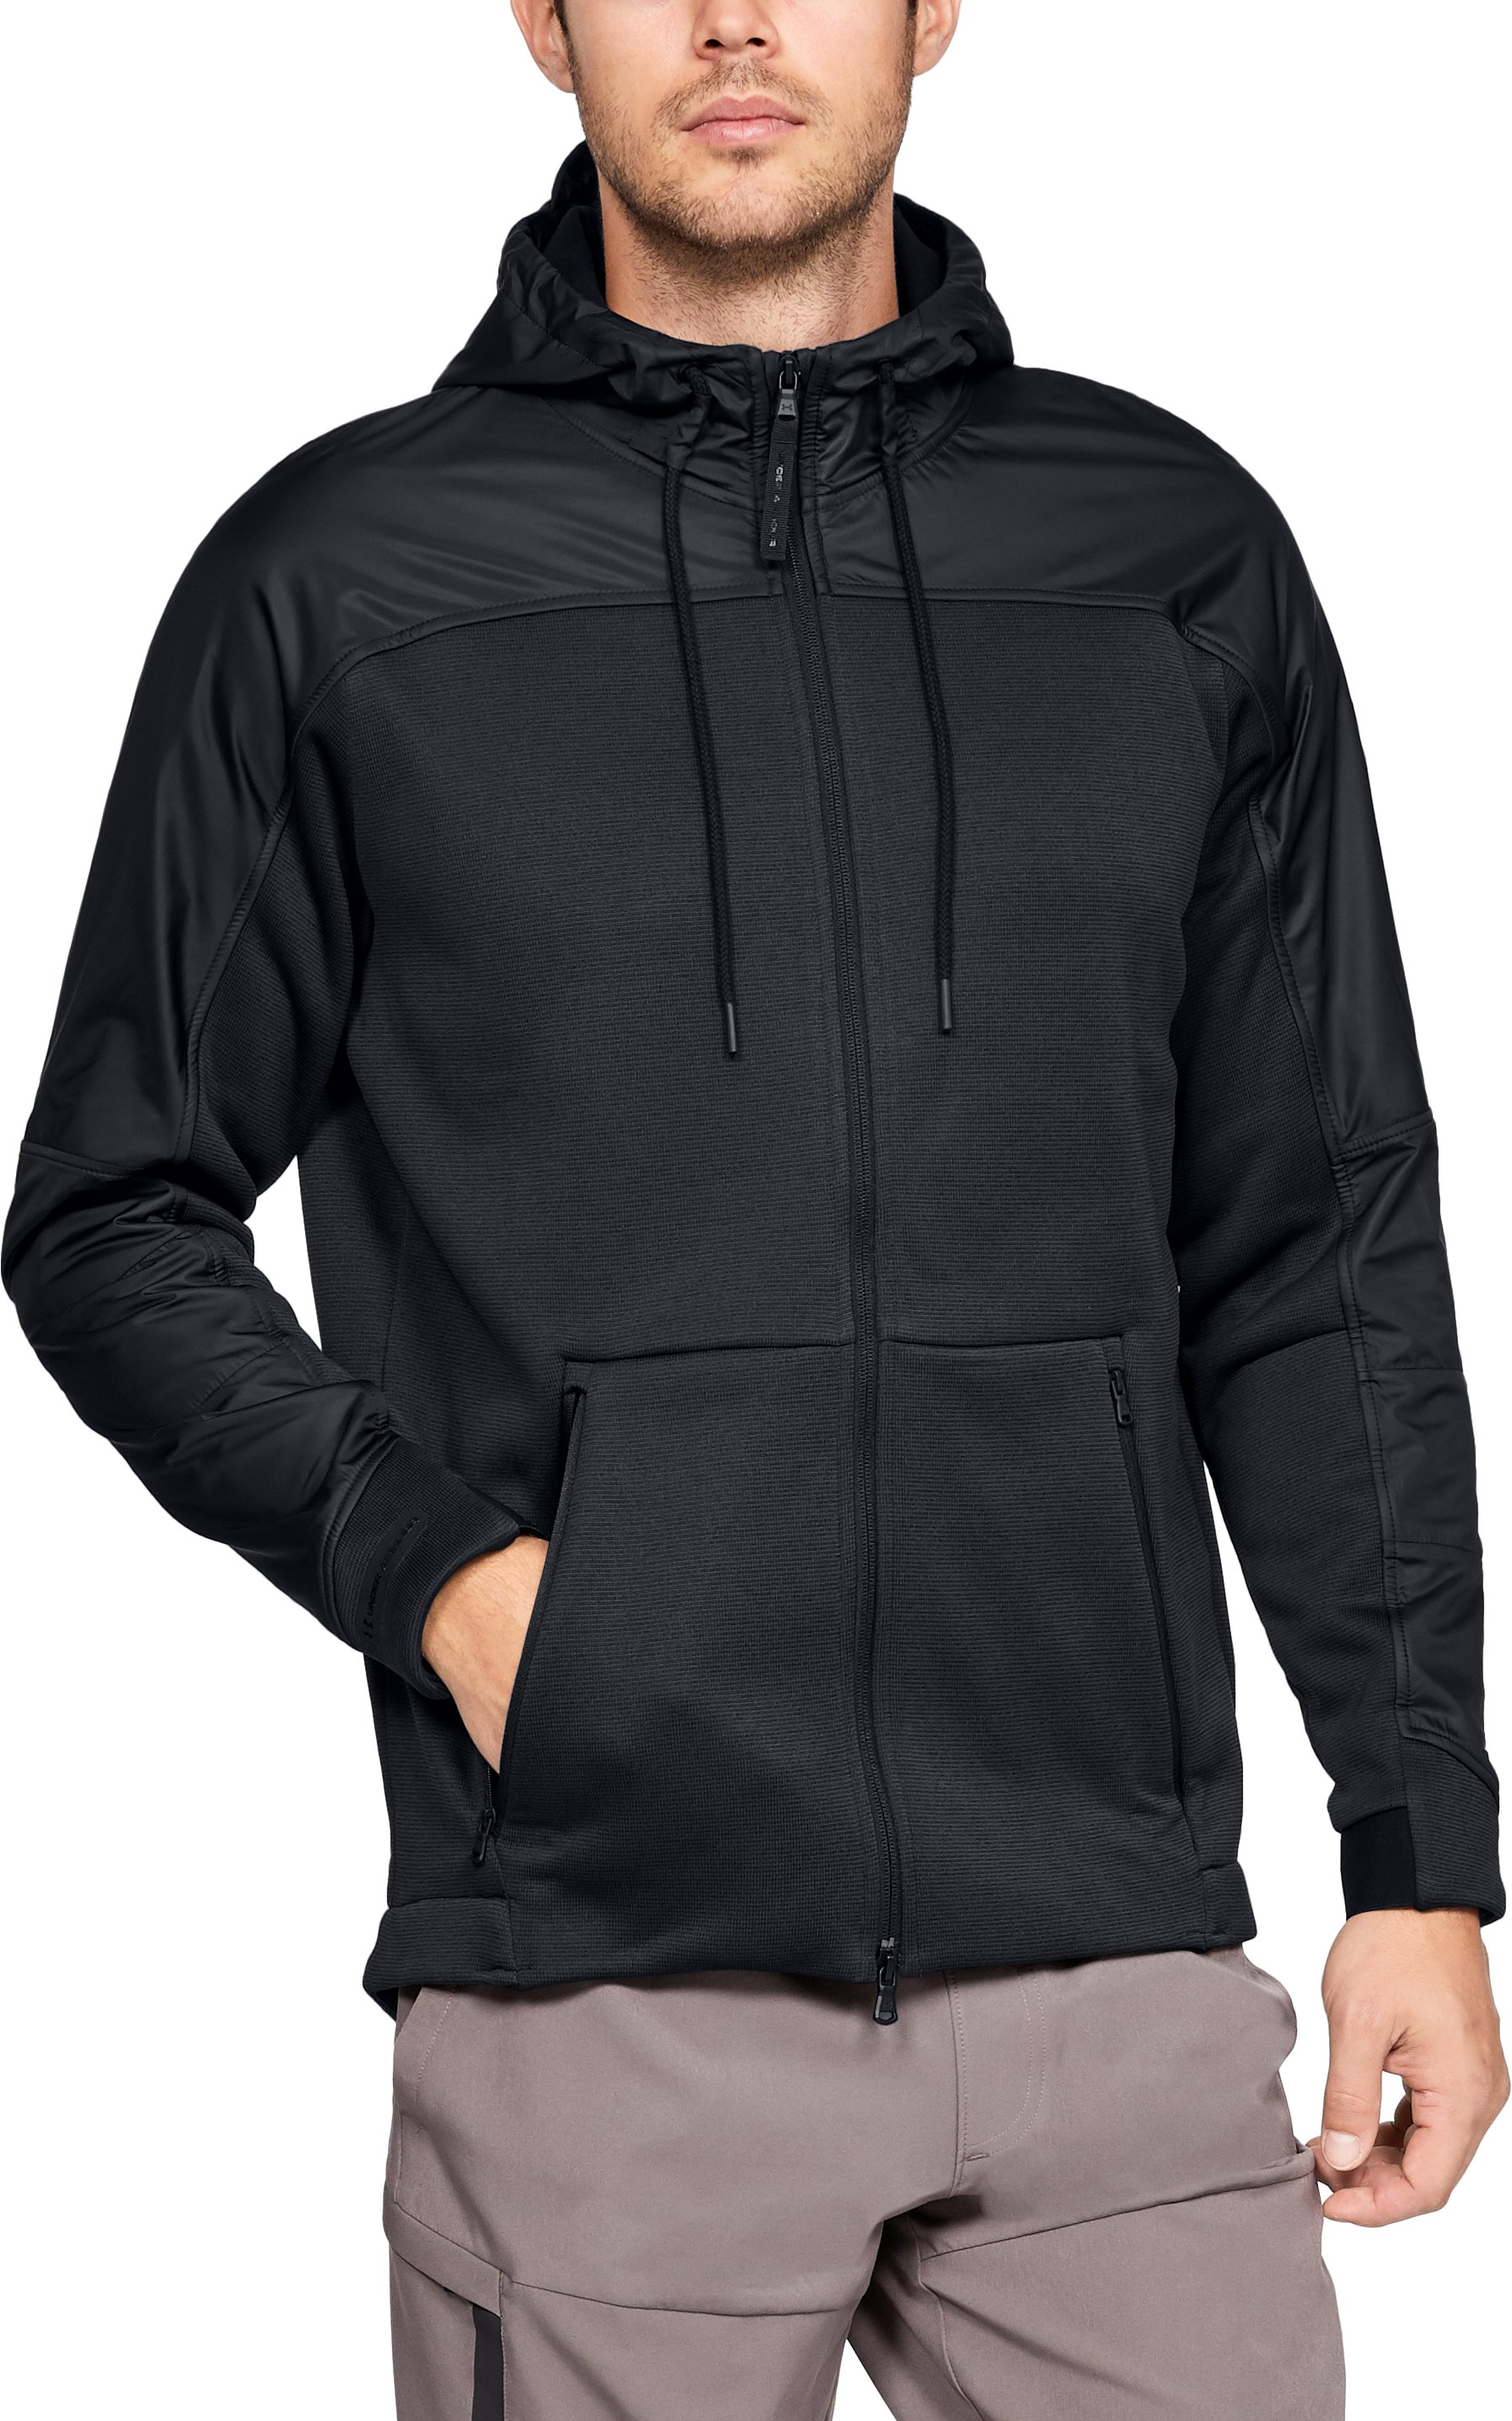 Men's ColdGear® Swacket, Black